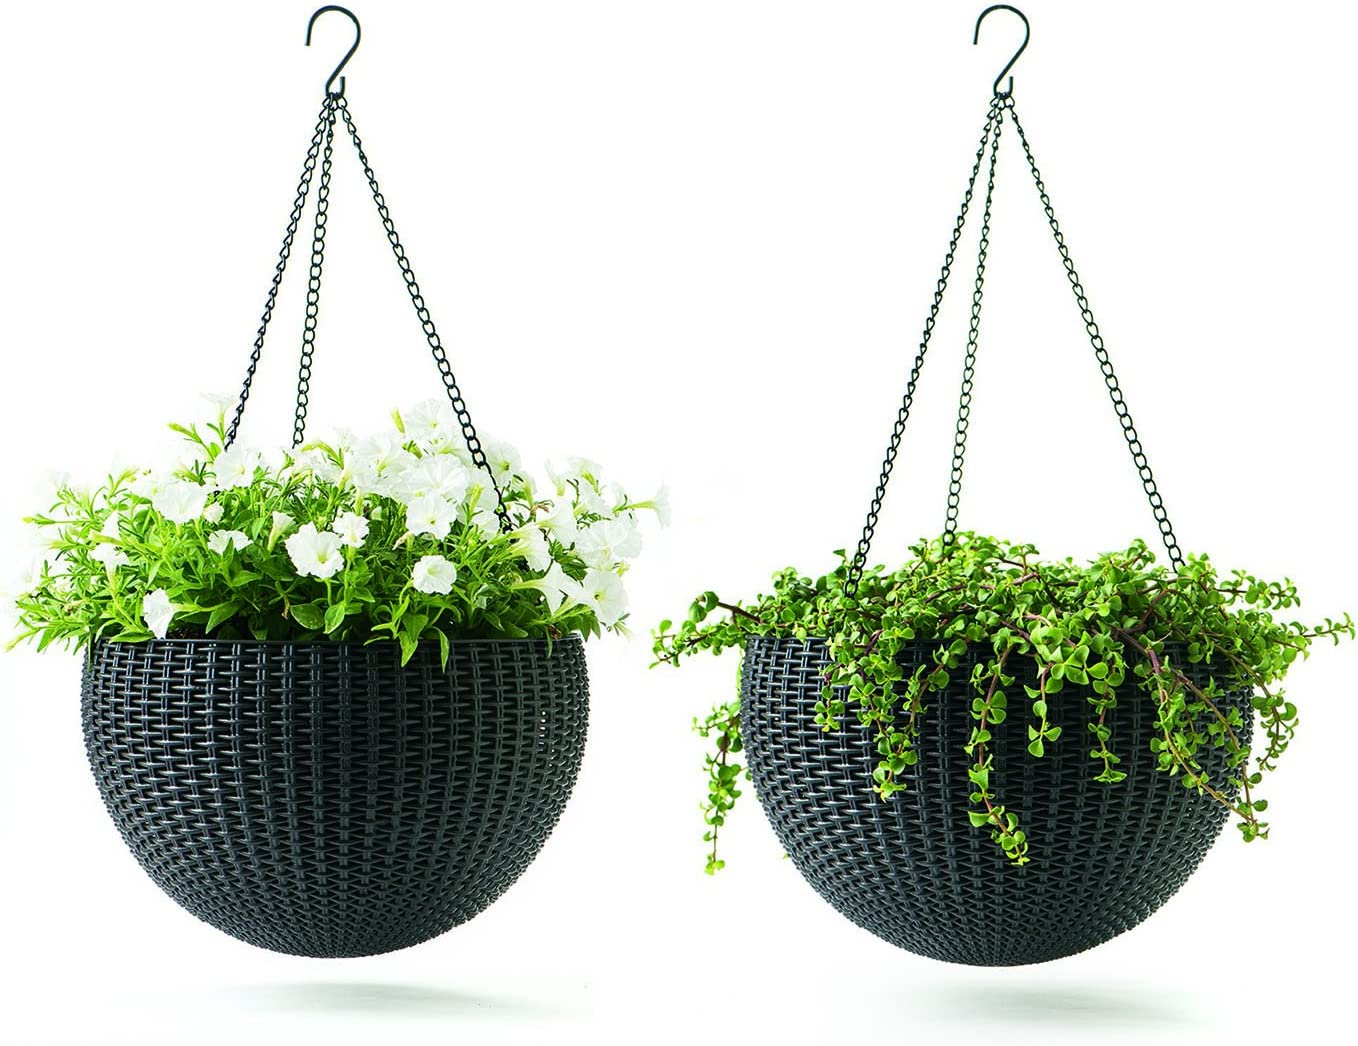 Keter Resin Rattan Set of 2 Round Hanging Planter Baskets for Indoor and Outdoor Plants-Perfect for Porches and Patio Decor, Dark Grey